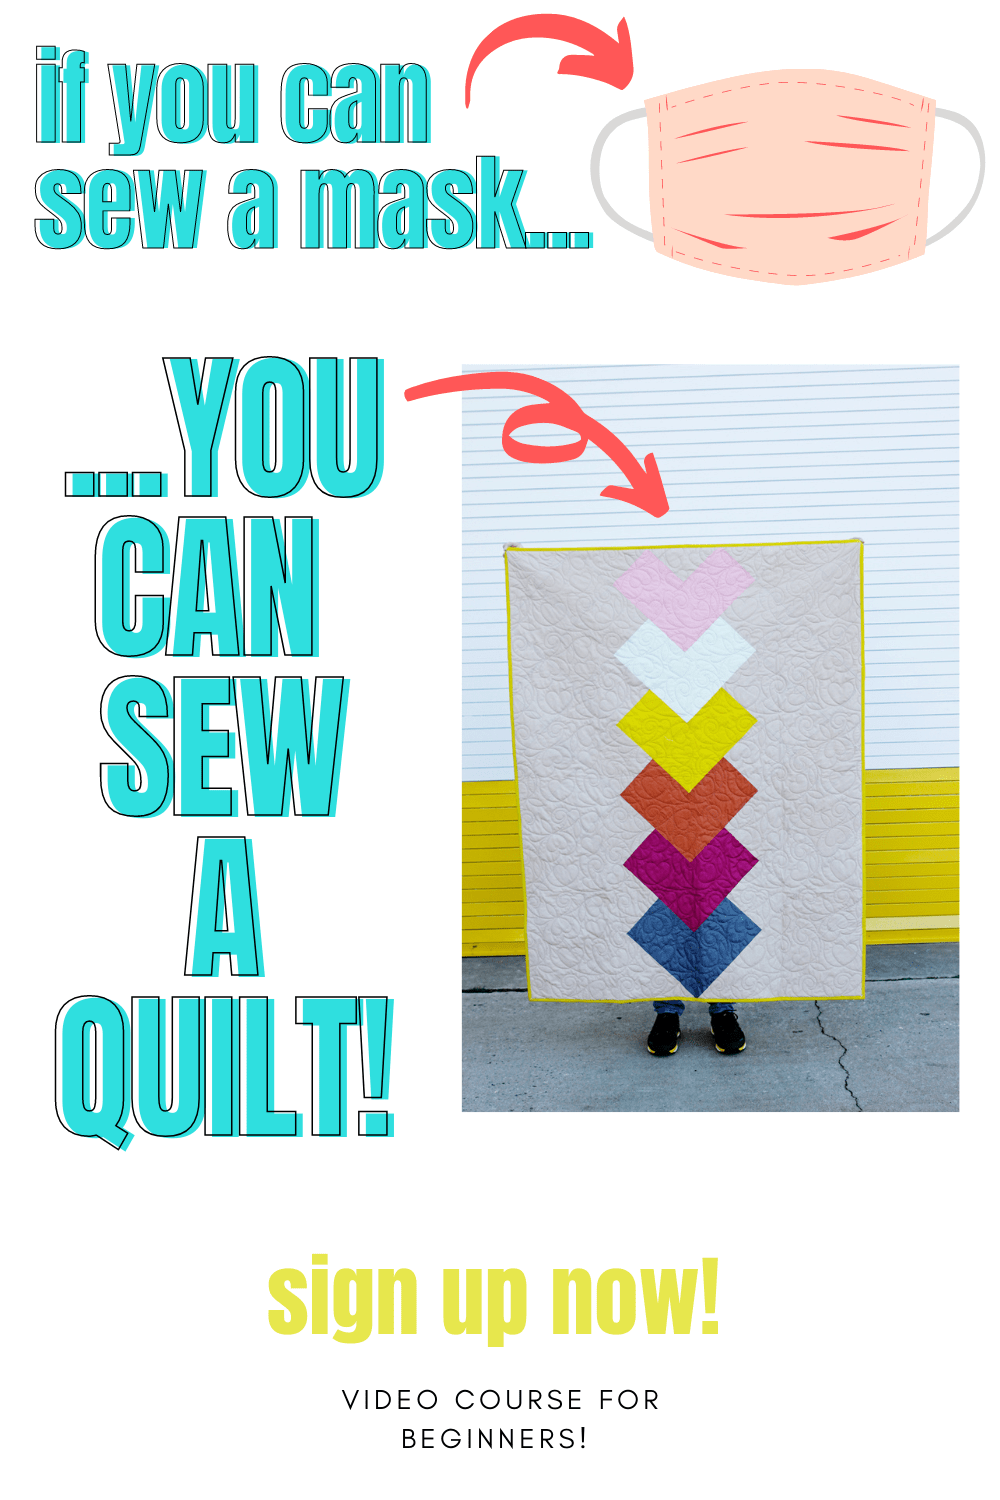 Wanna Learn to Quilt?